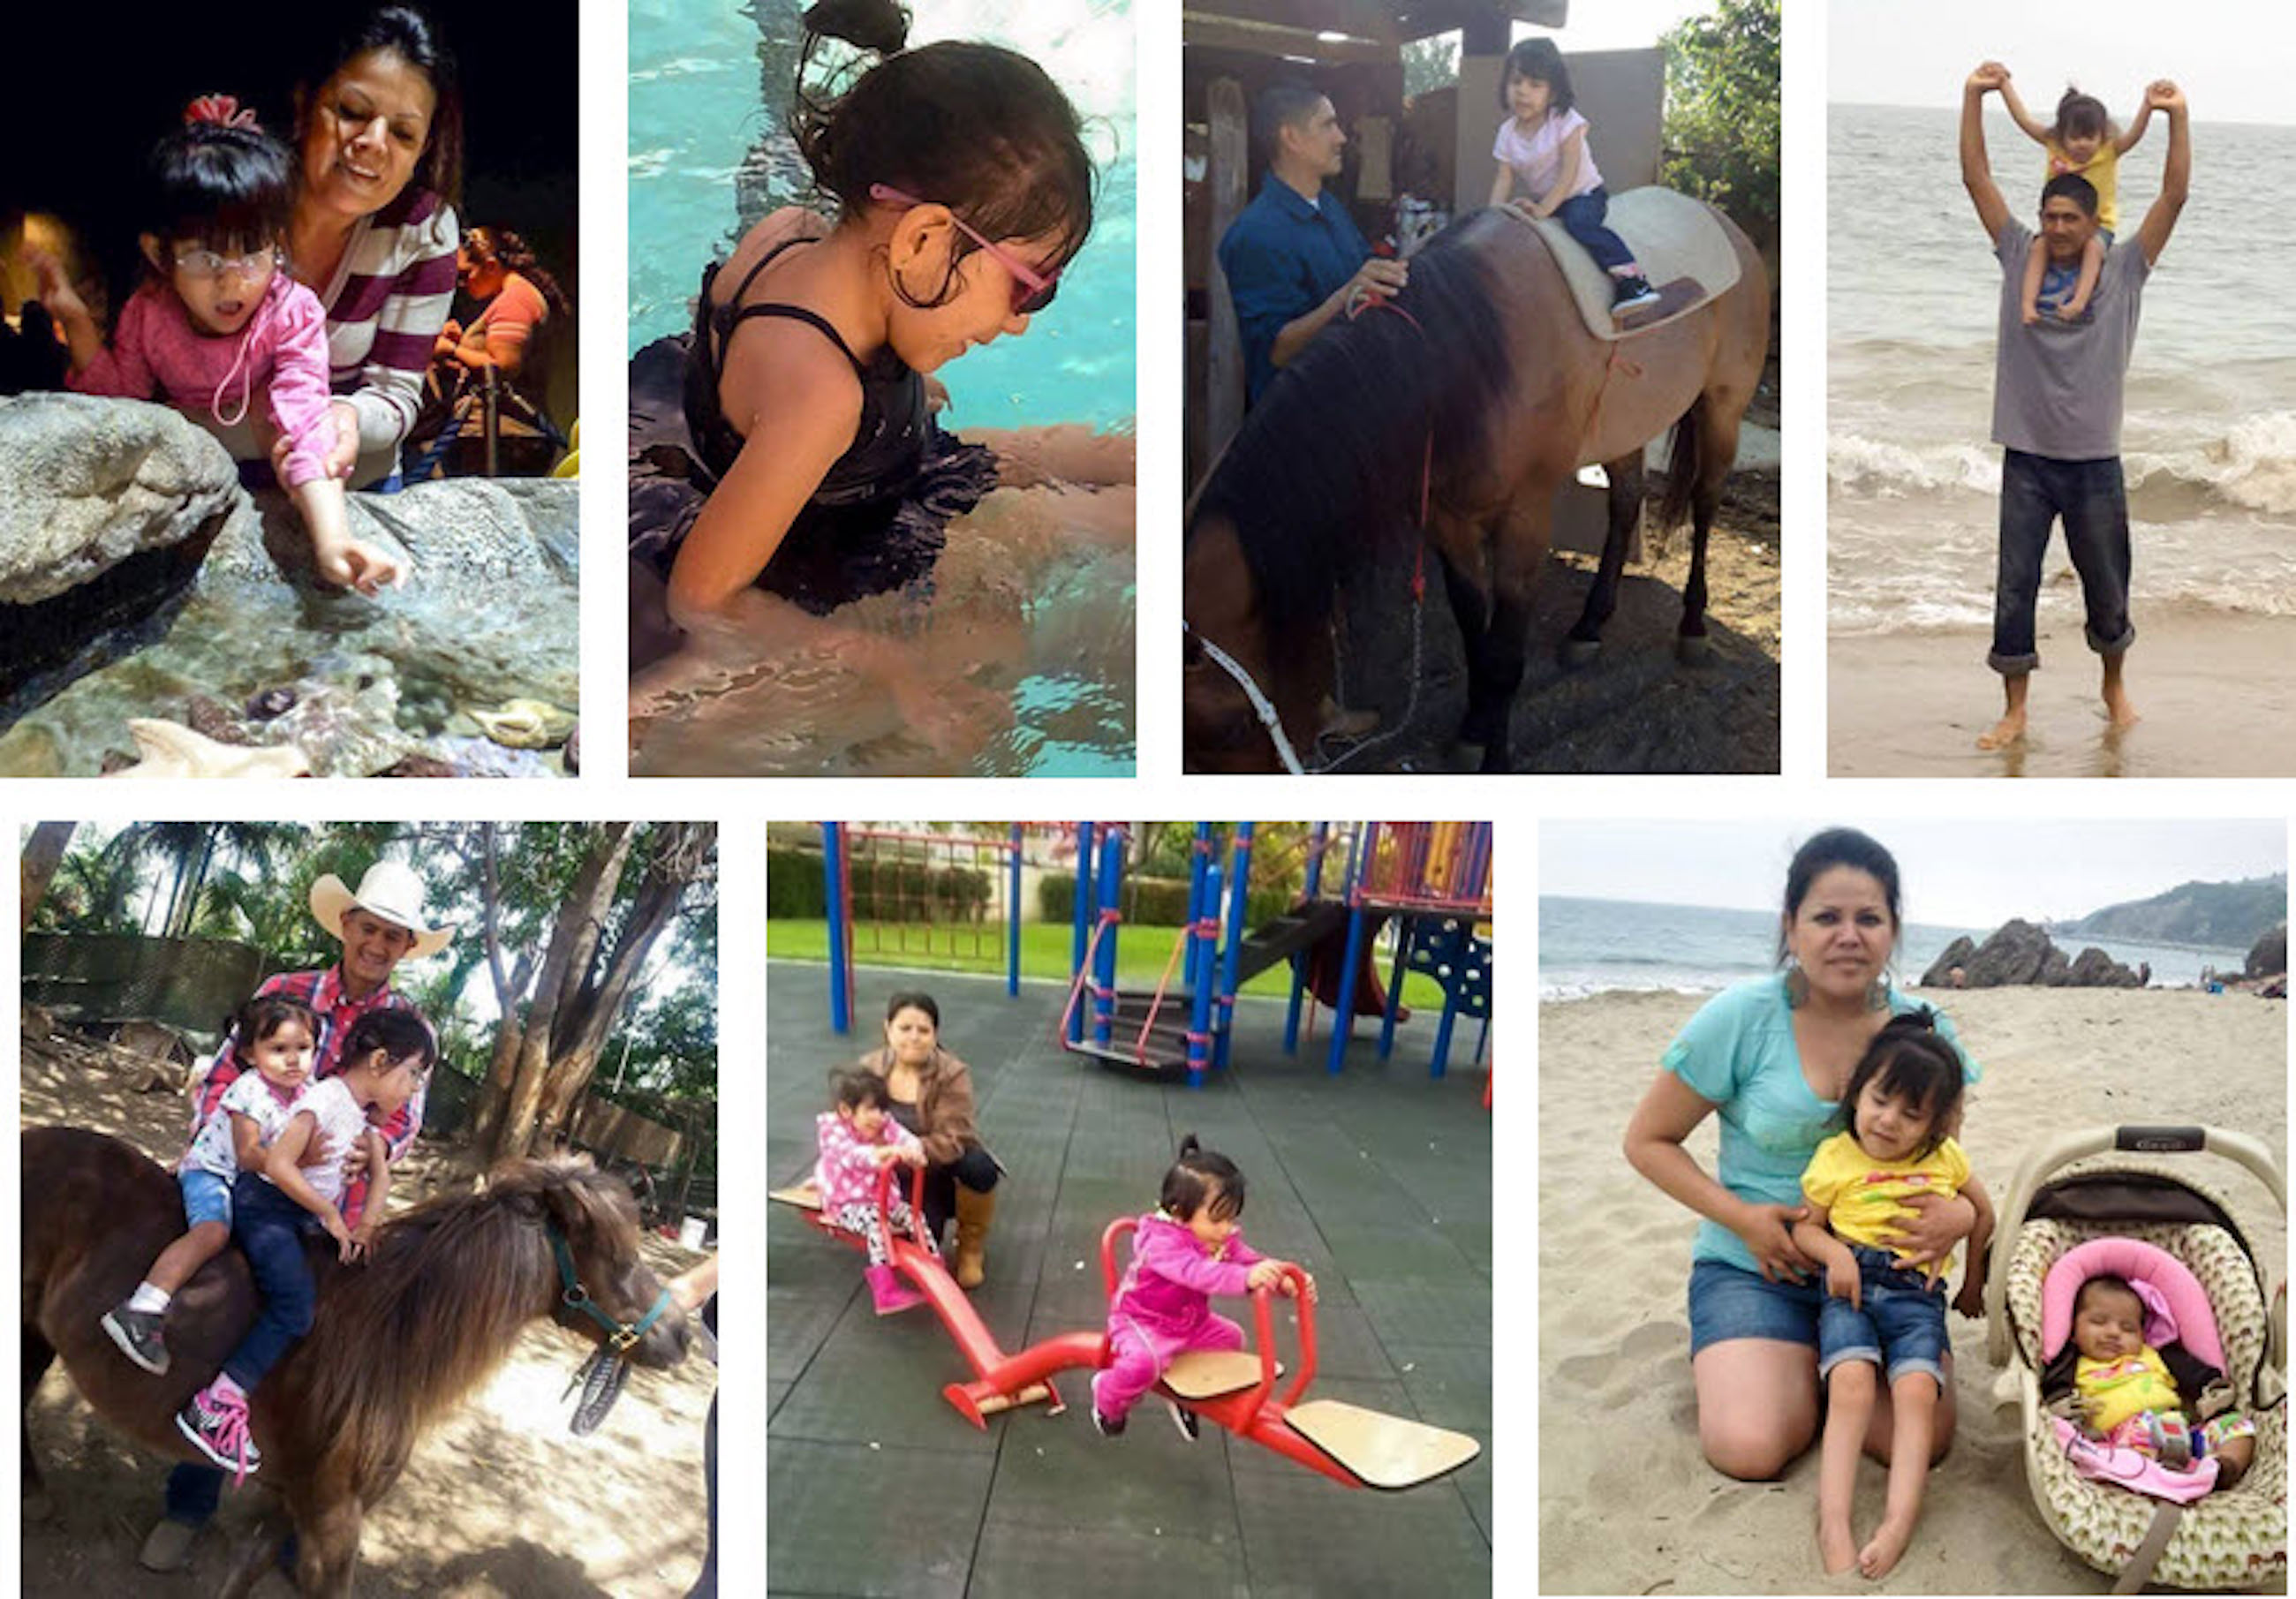 A collage of images of valerie doing outdoor activities with her family, including horseback riding, swimming, playing at the park.